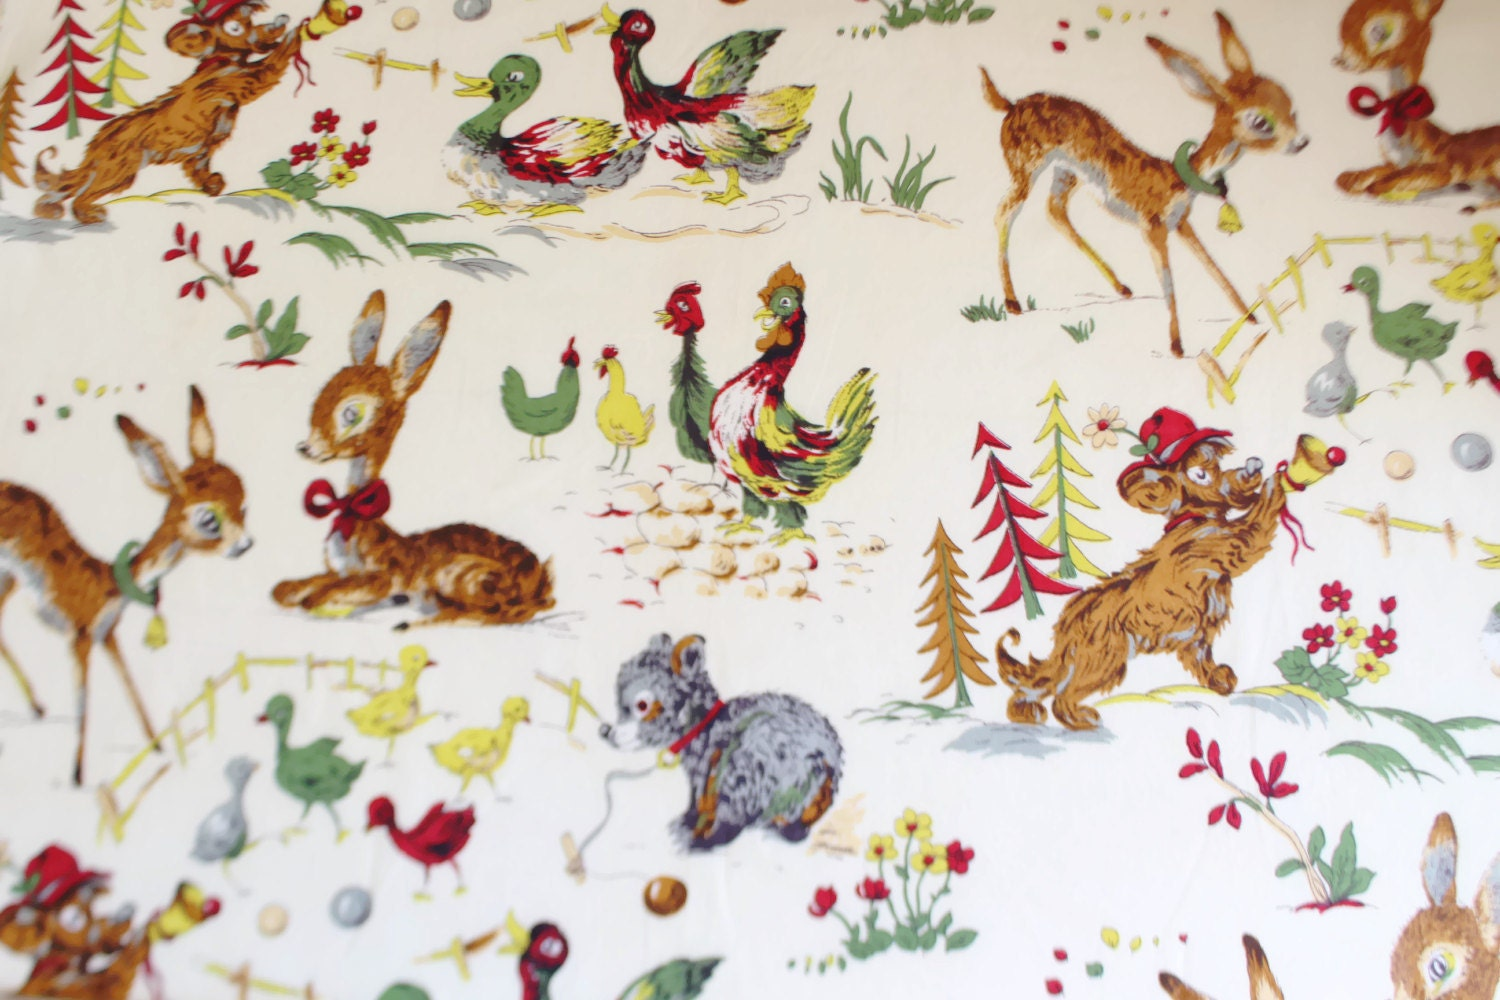 Indian head vintage fabric 2 yards 1950s childrens print for Vintage childrens fabric prints